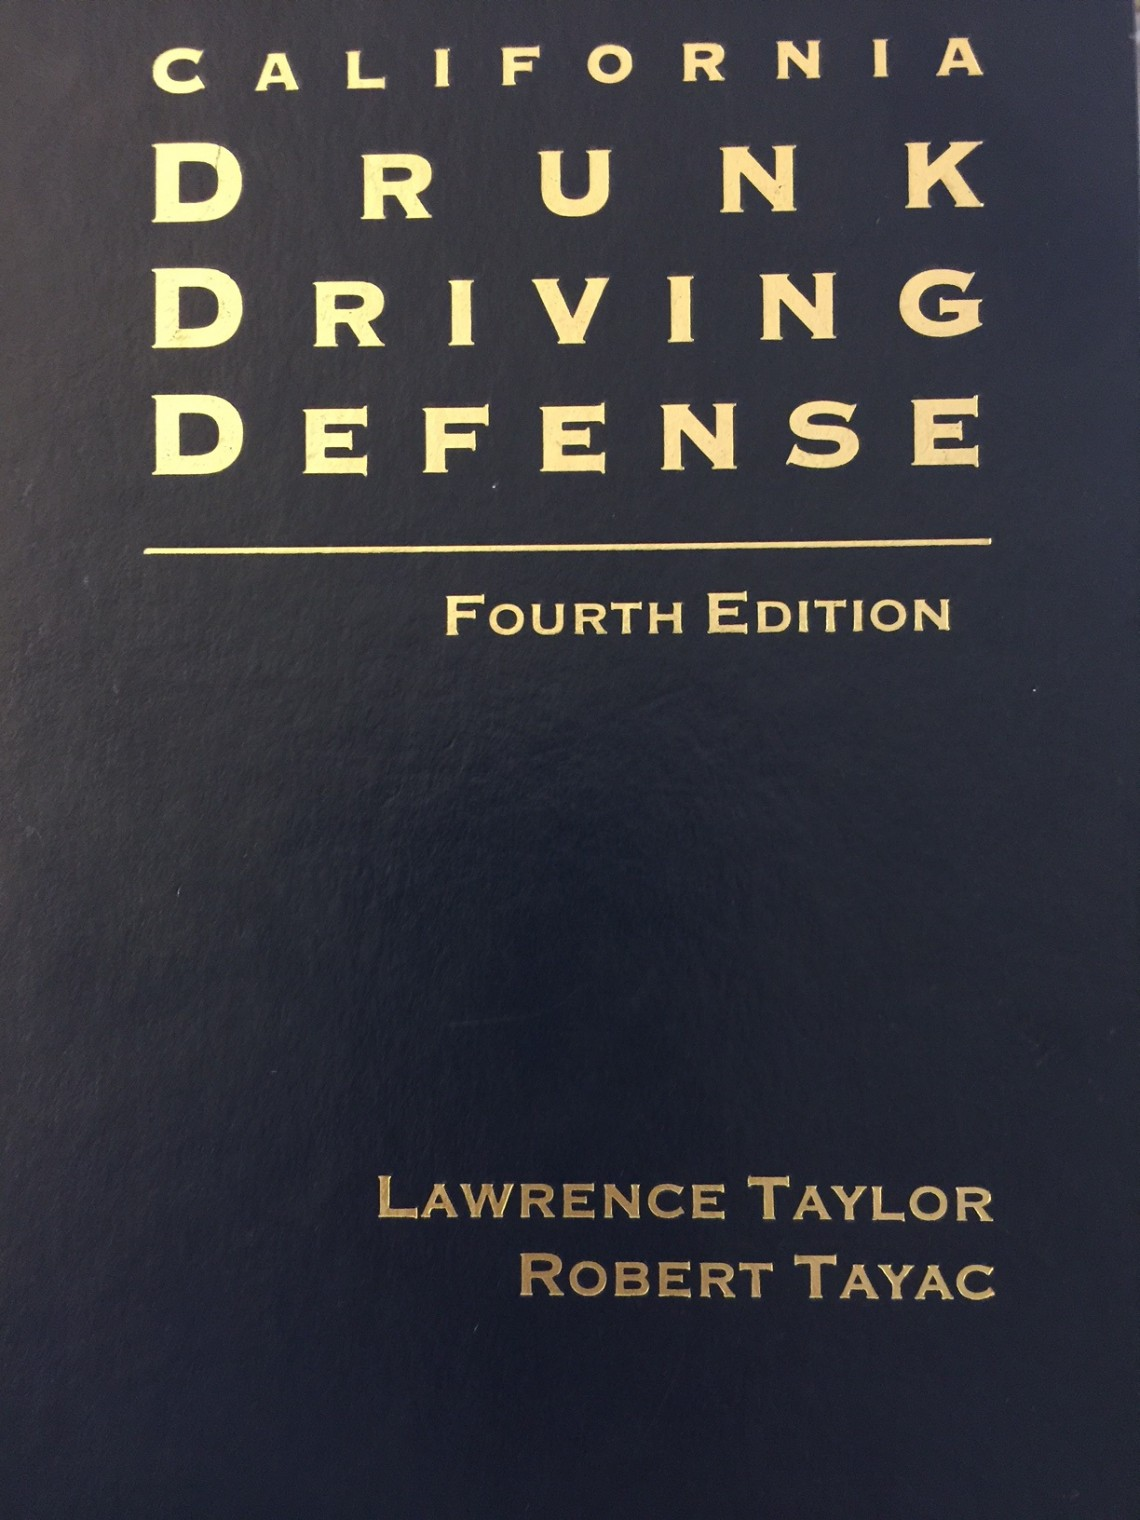 California Drunk Driving Defense is the premier DUI defense guide for California attorneys.  The book written by Lawrence Taylor and Robert Tayac address the DUI administrative hearing and the criminal case.